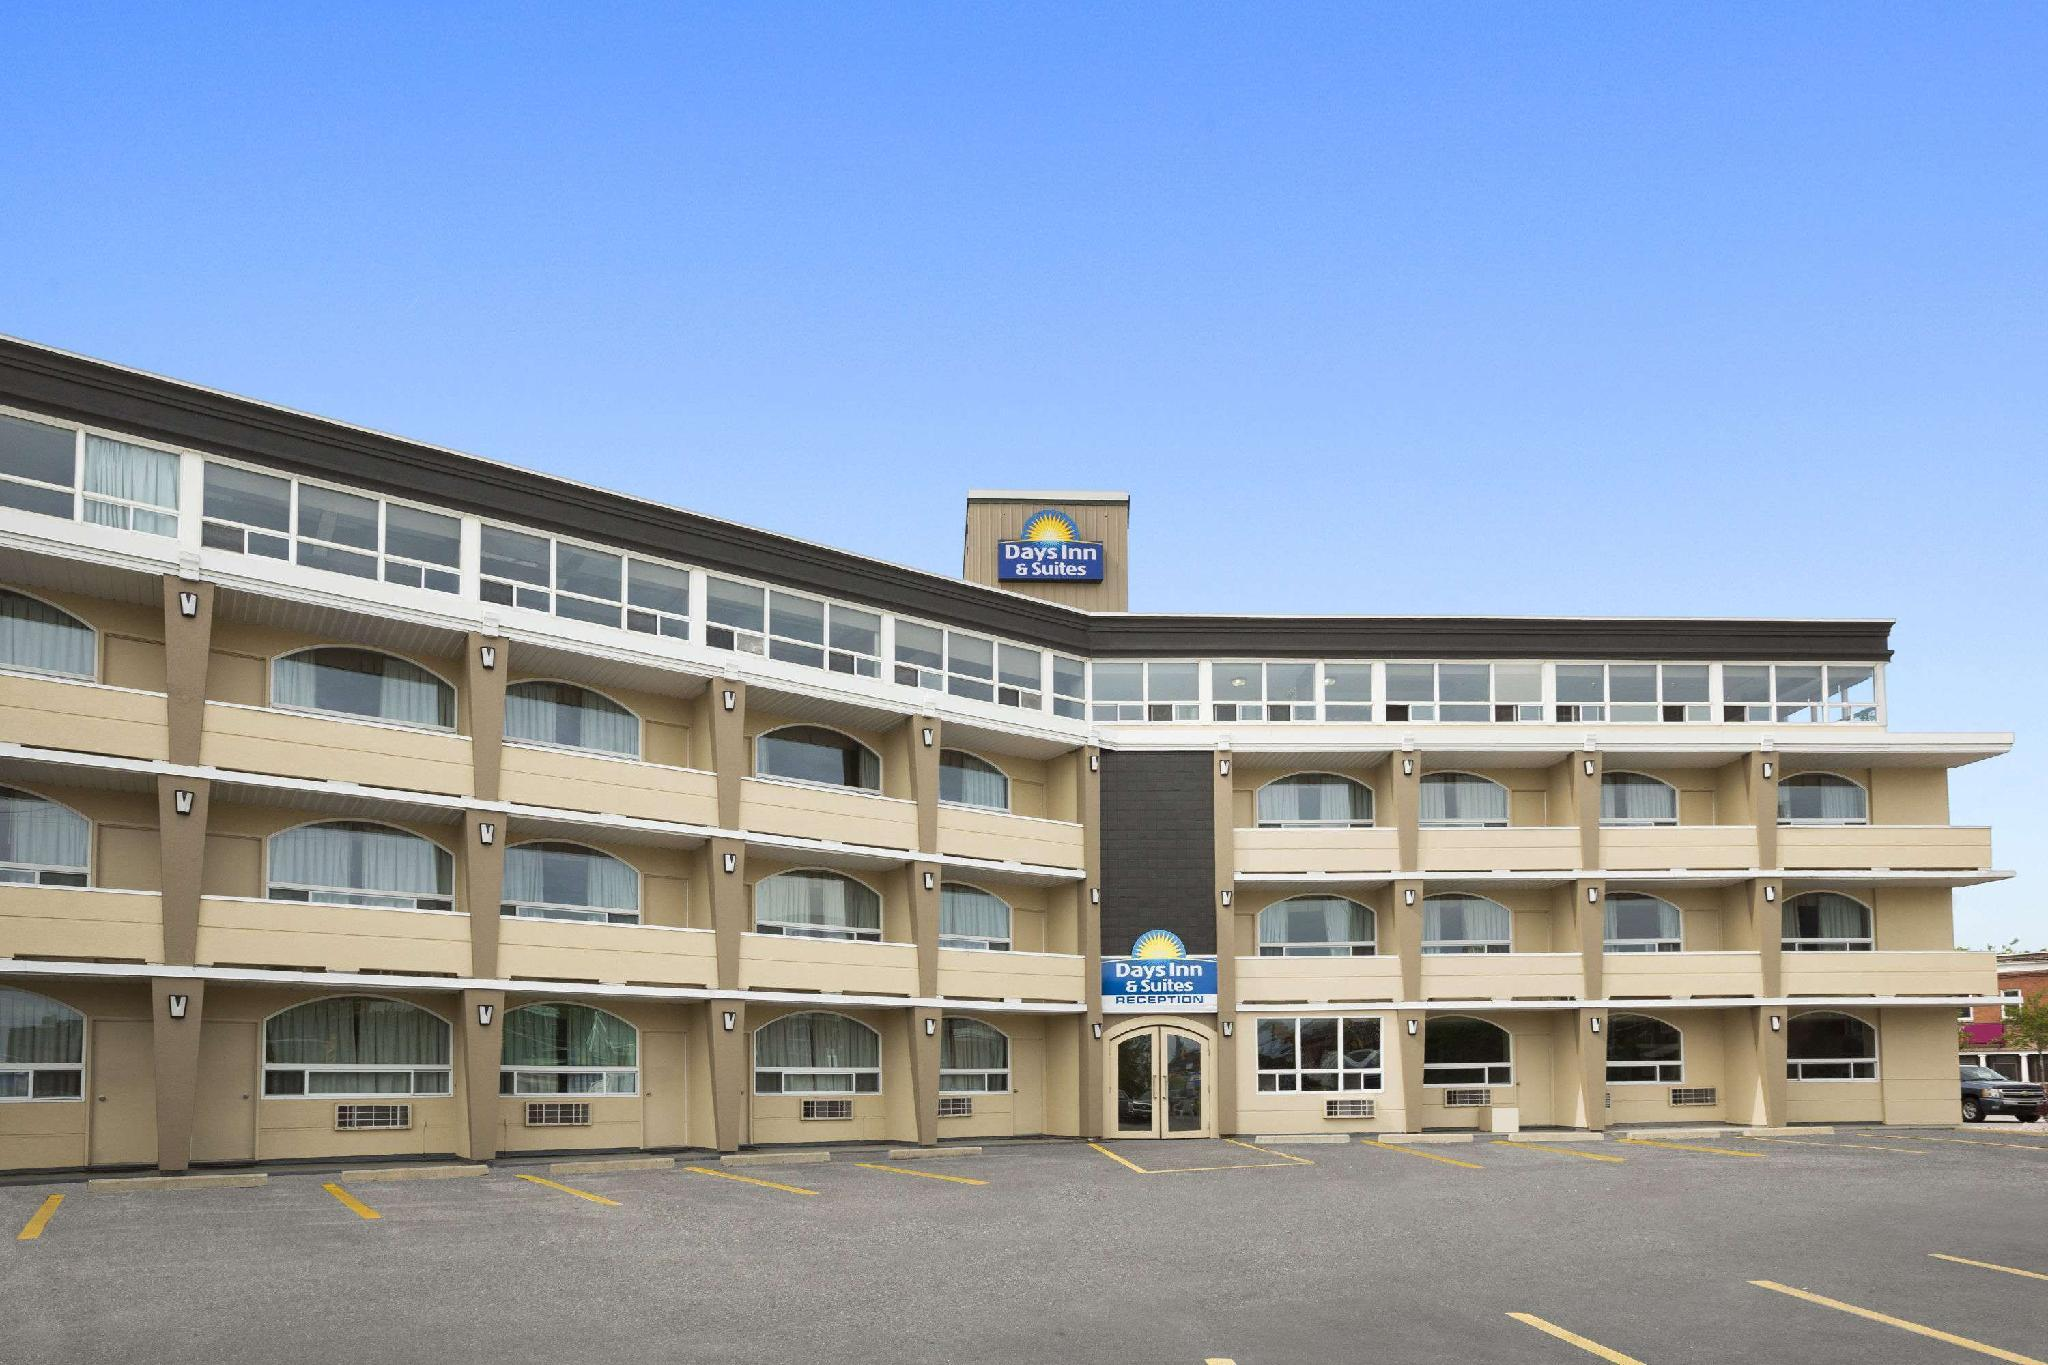 Days Inn And Suites By Wyndham North Bay